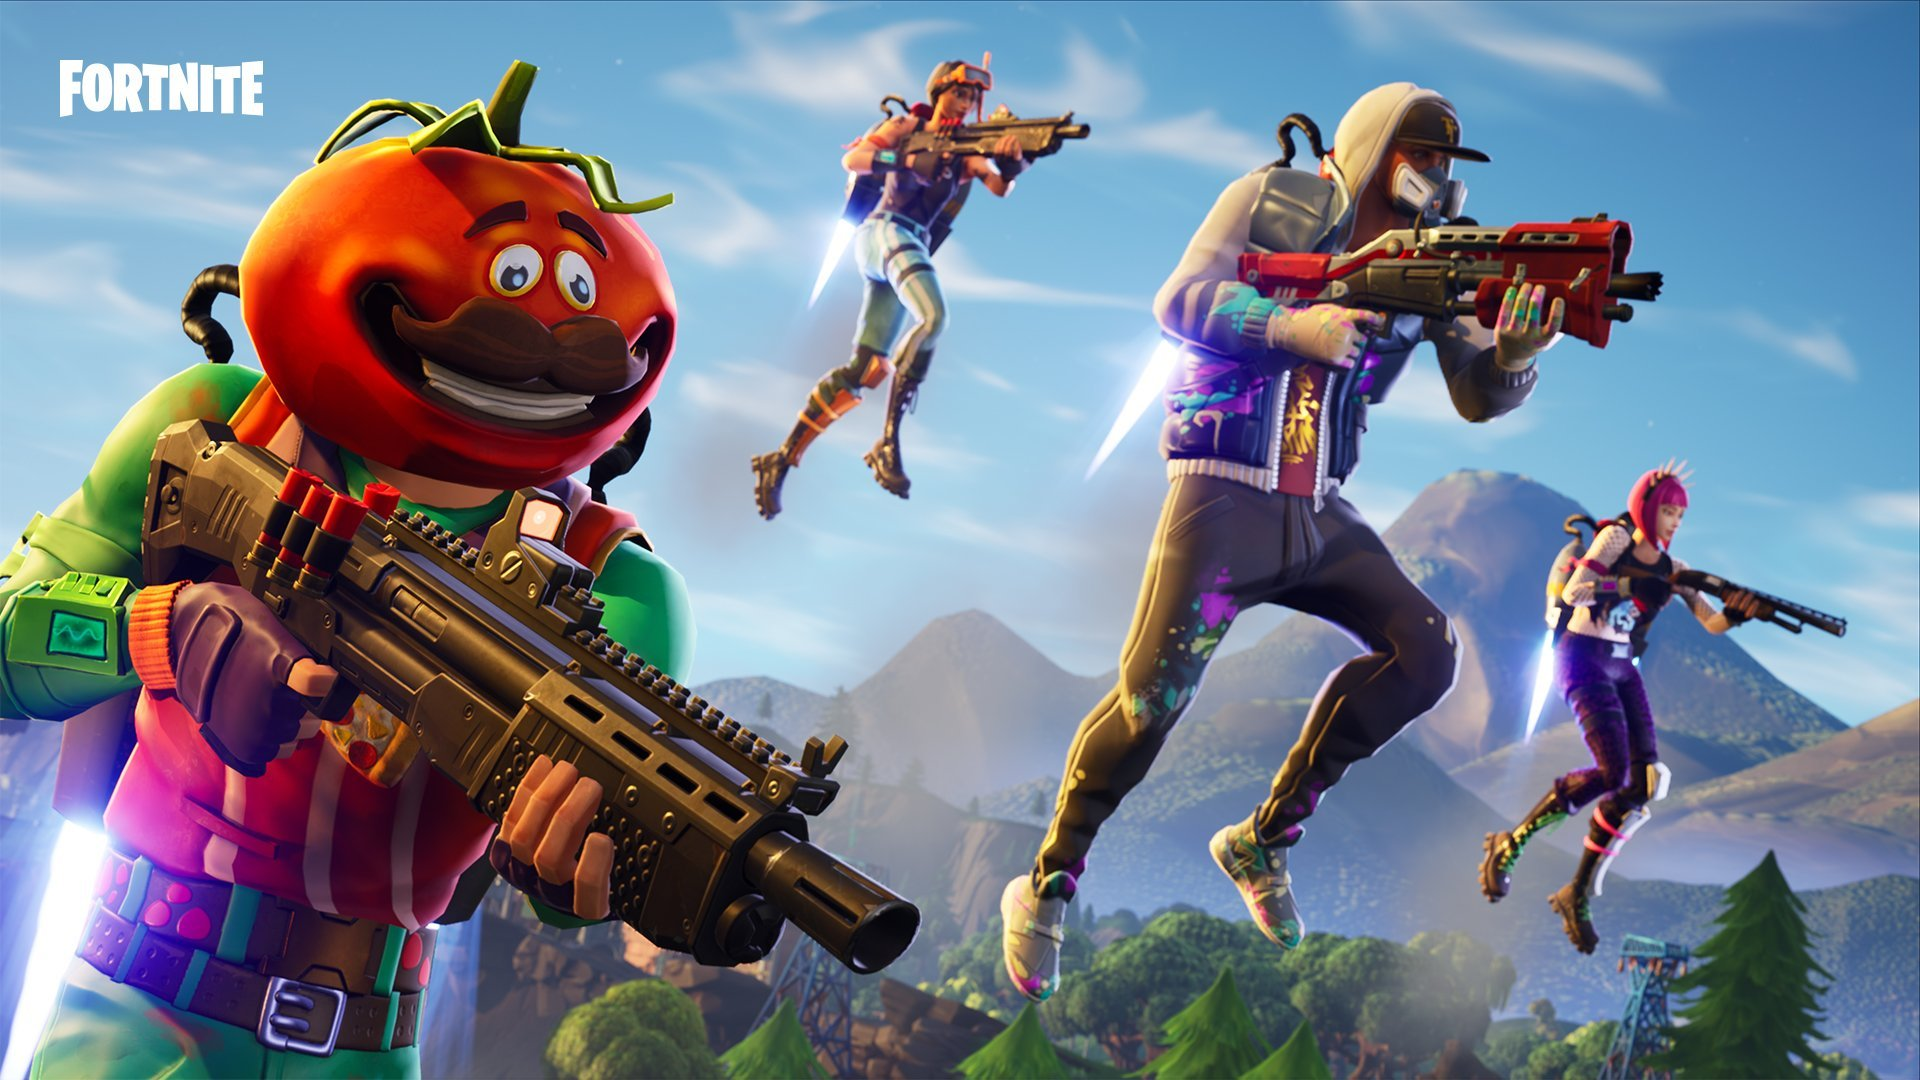 Rejoice! Your Fortnite account is now open for all platforms.